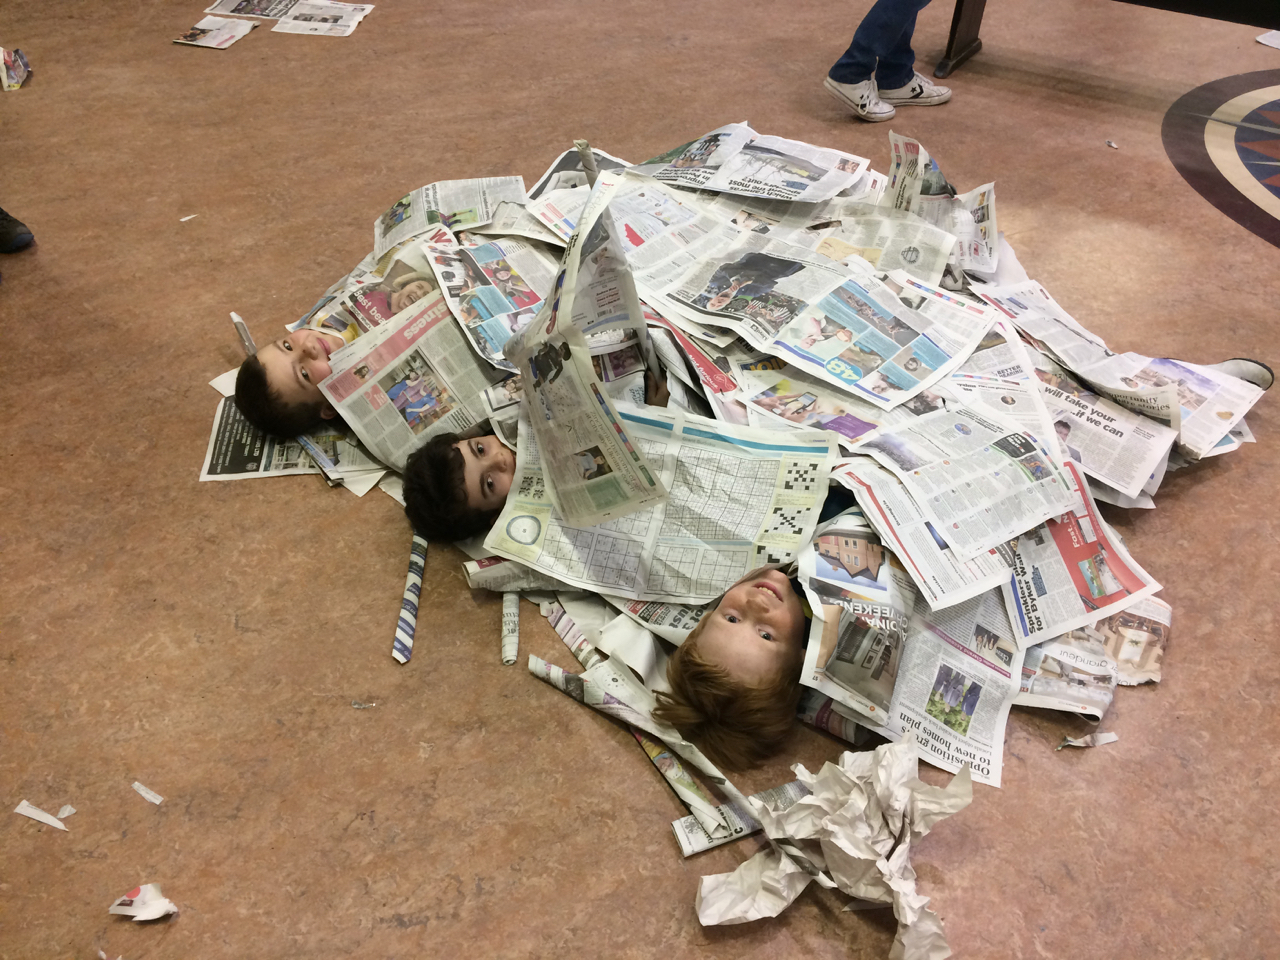 Scouts buried under a heap of paper.